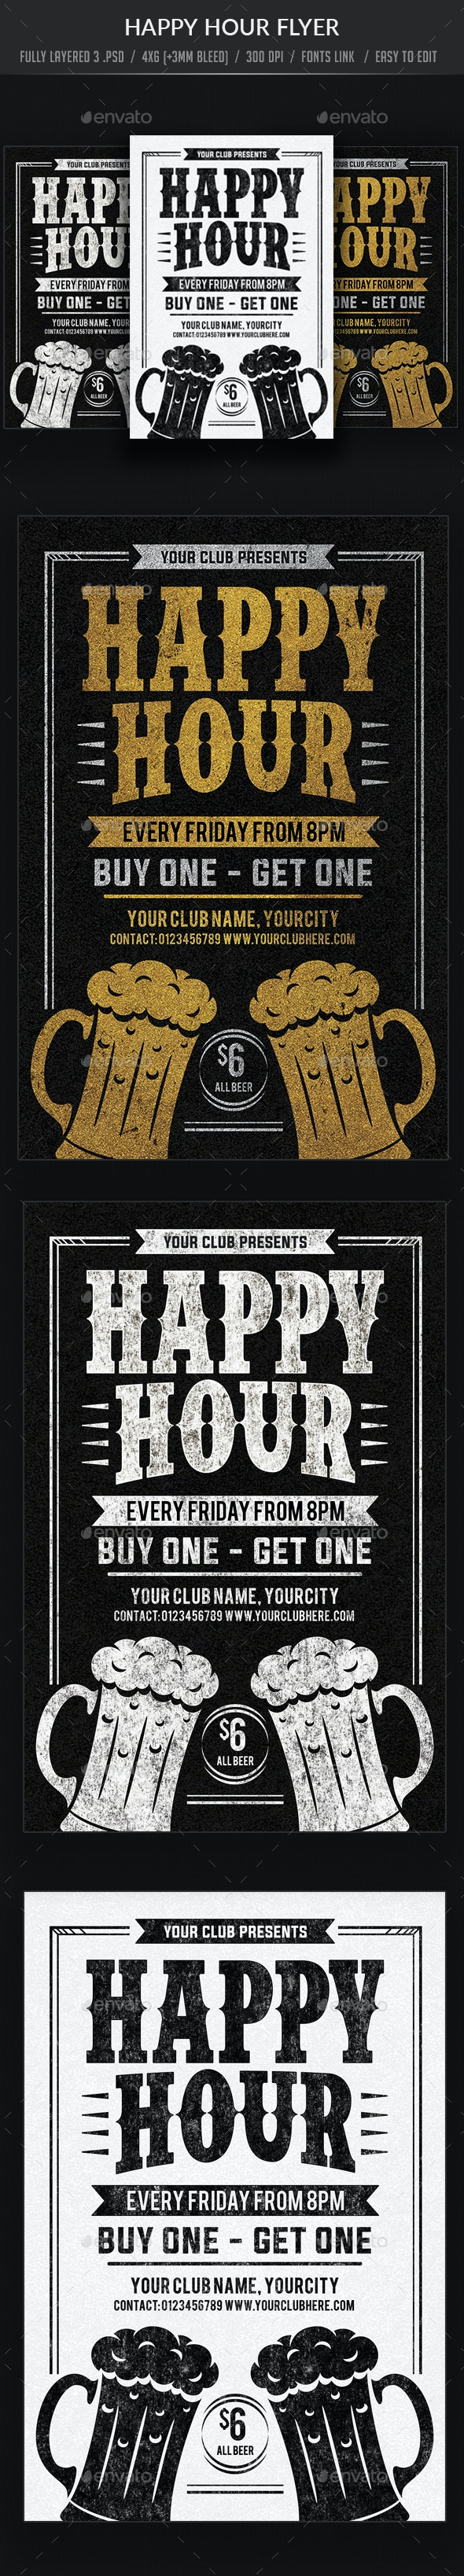 Happy Hour Flyer Templates - Clubs & Parties Events